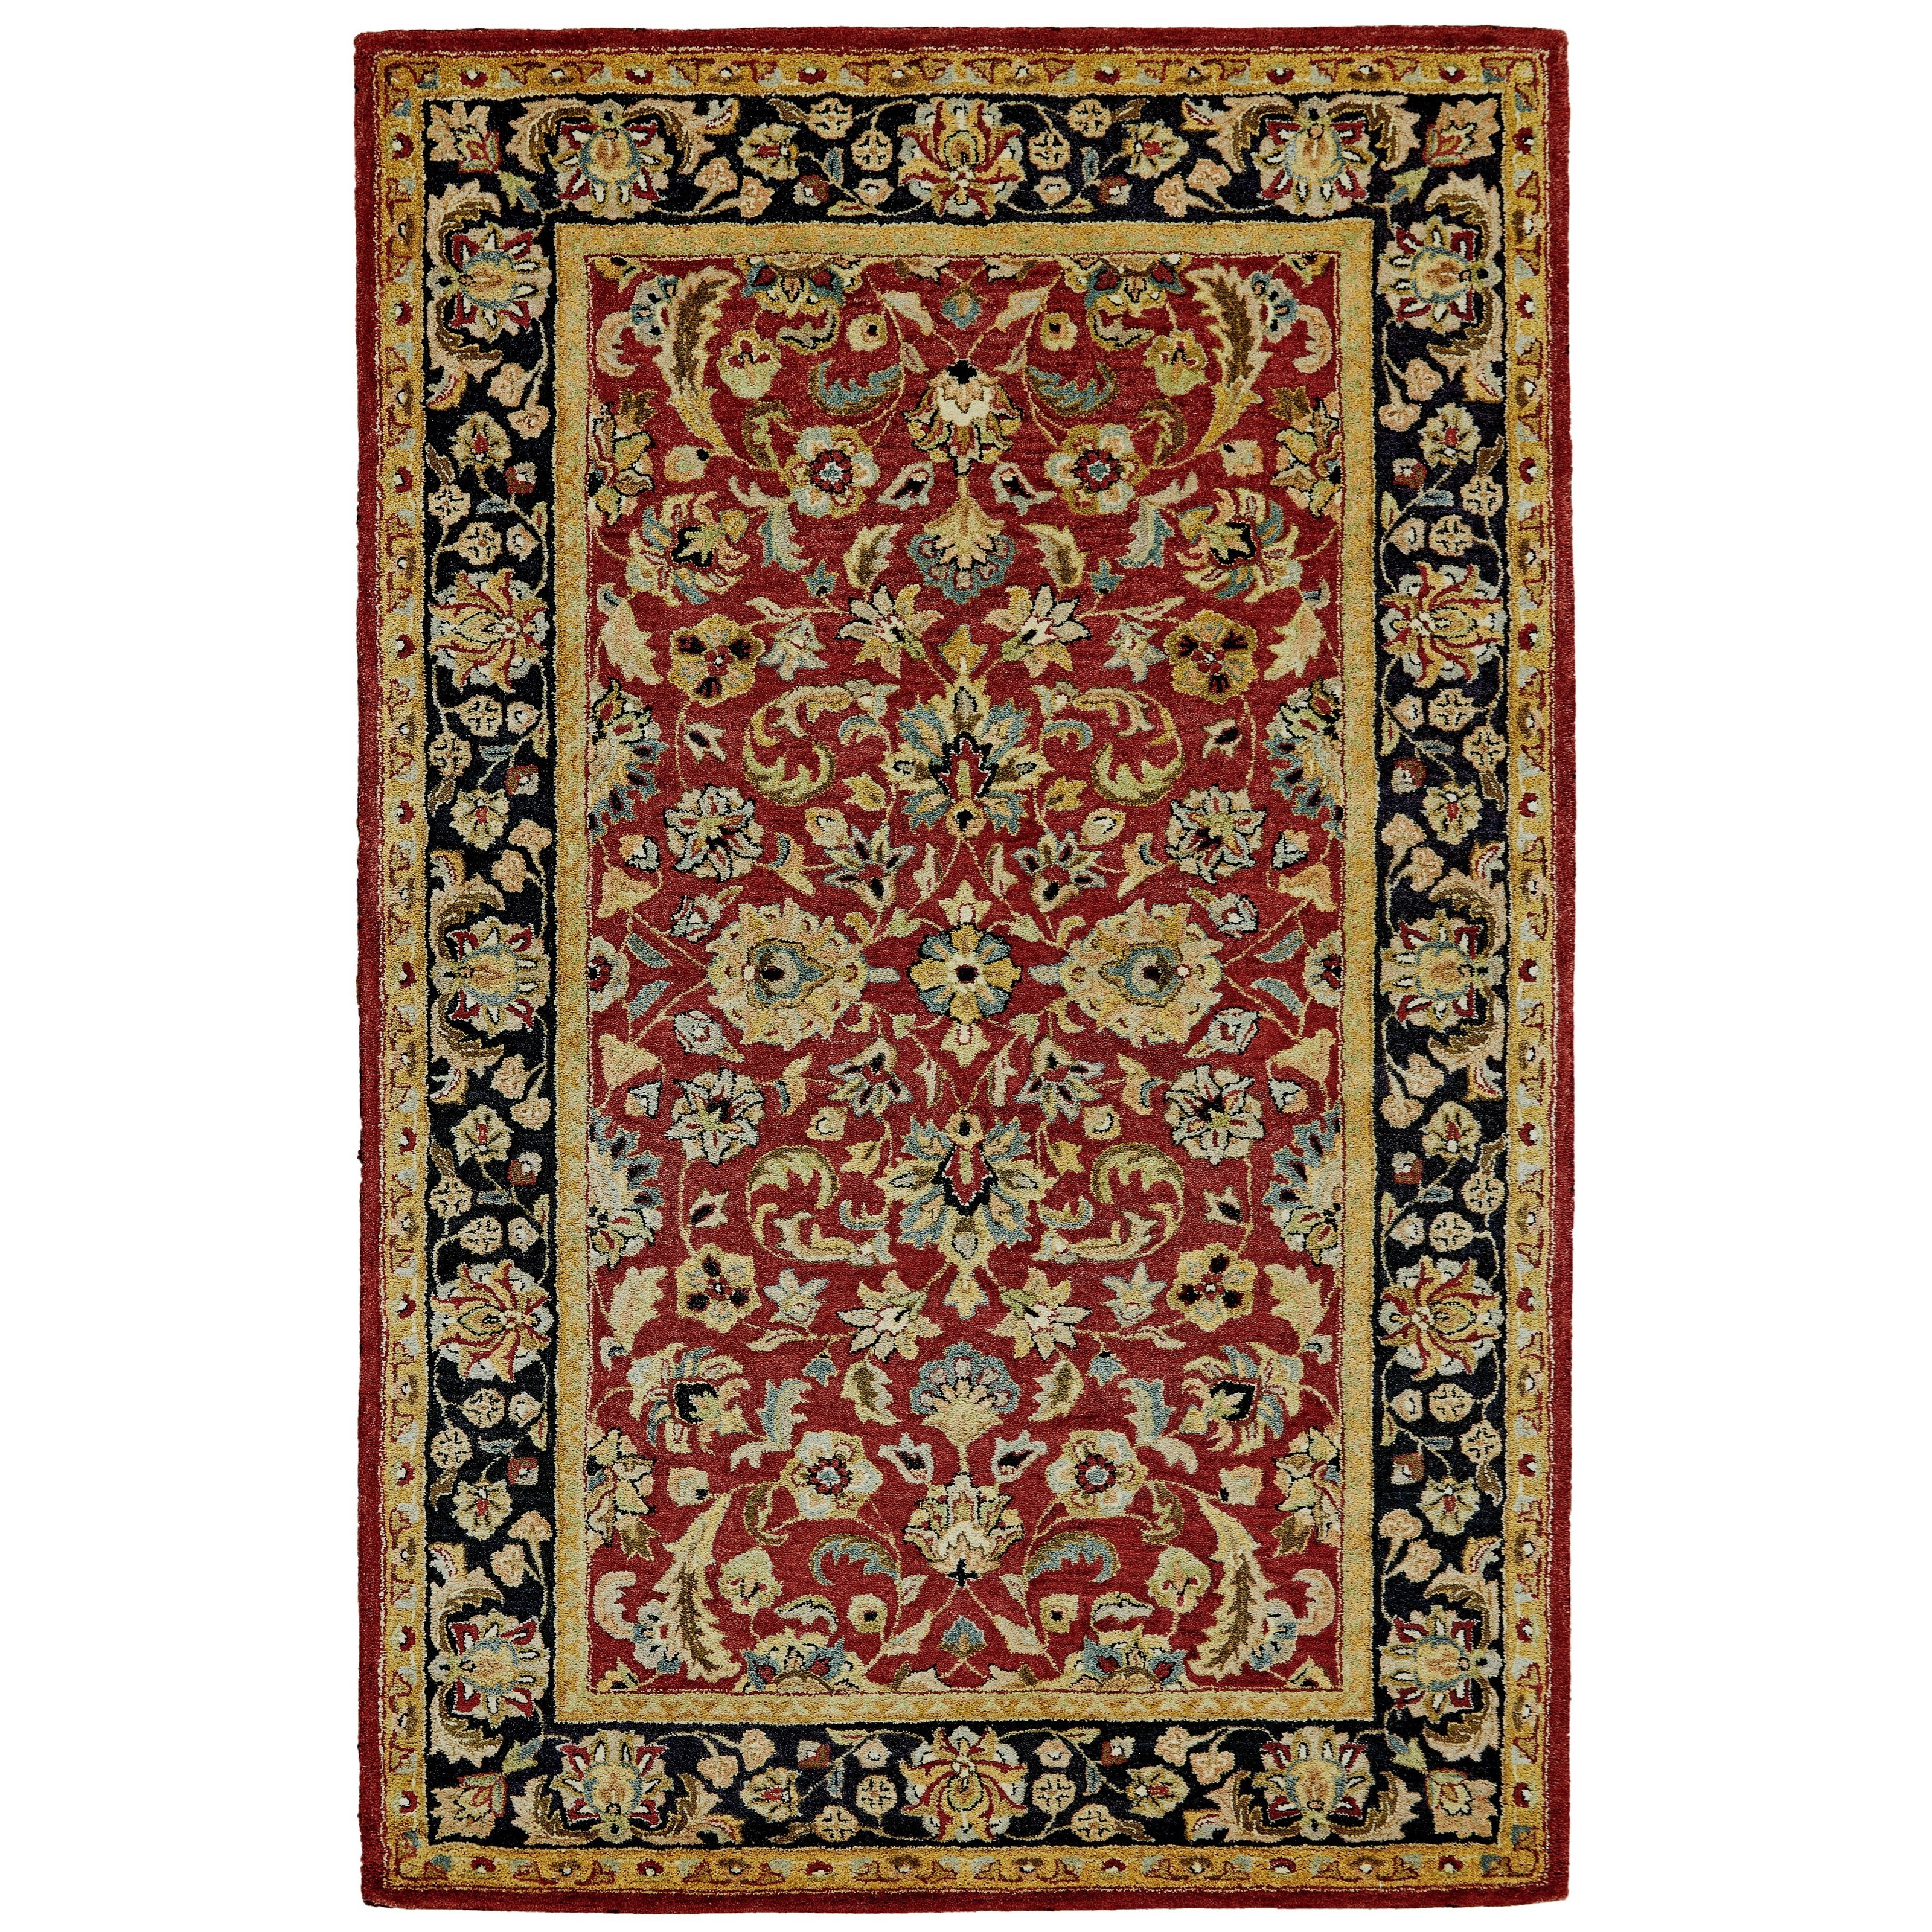 Ziba Red/Black 5' x 8' Area Rug by Feizy Rugs at Sprintz Furniture